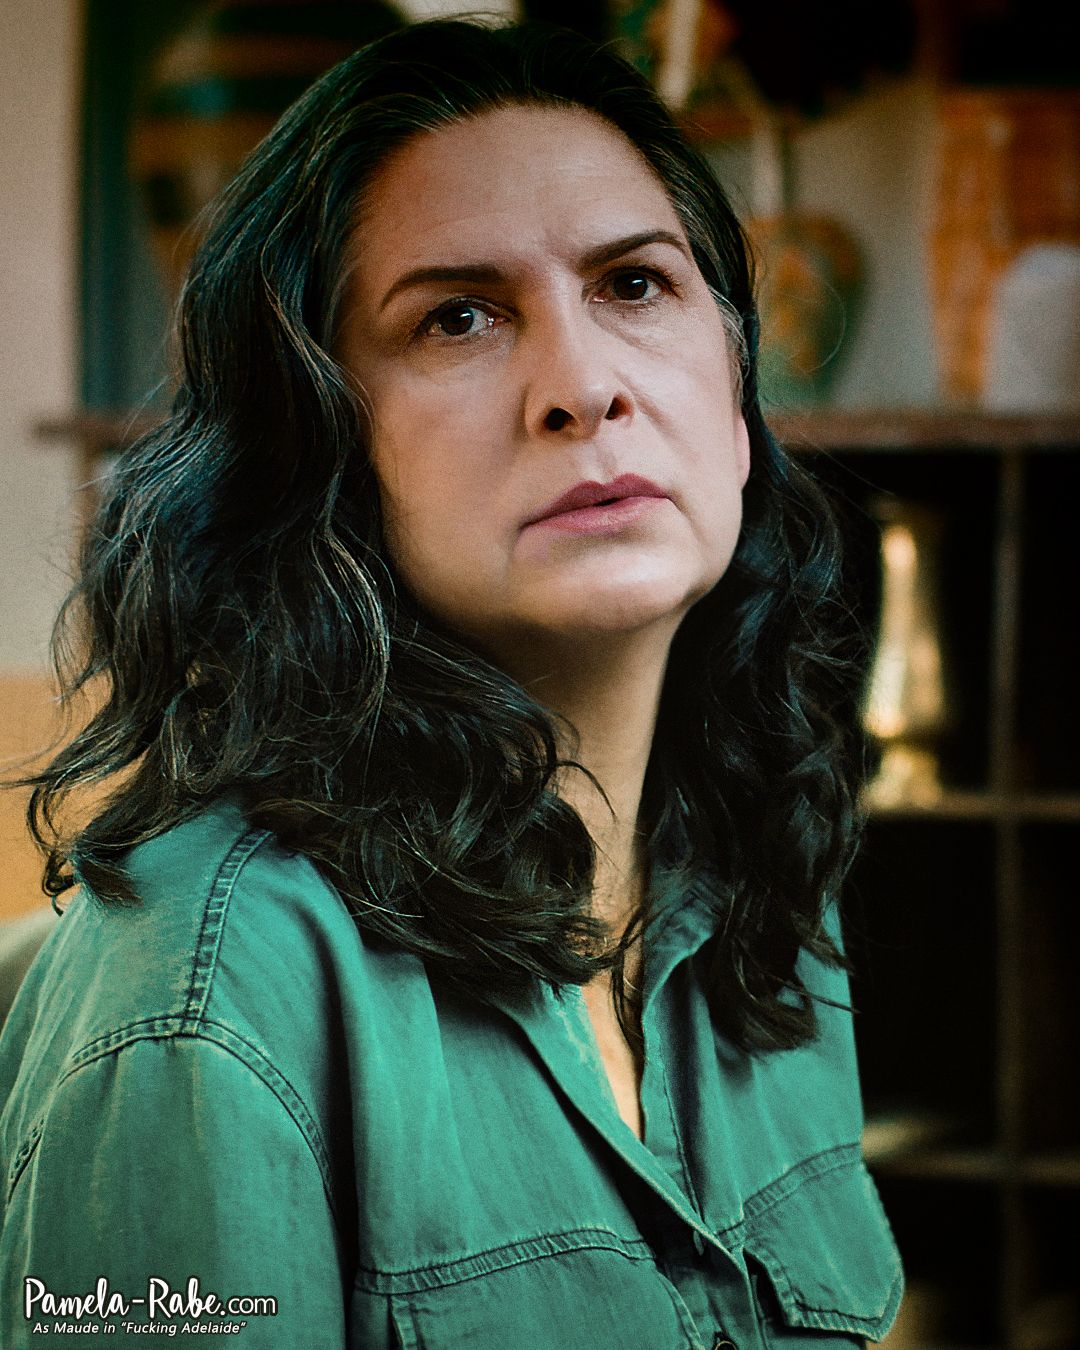 Forum on this topic: Candy Barr, pamela-rabe/